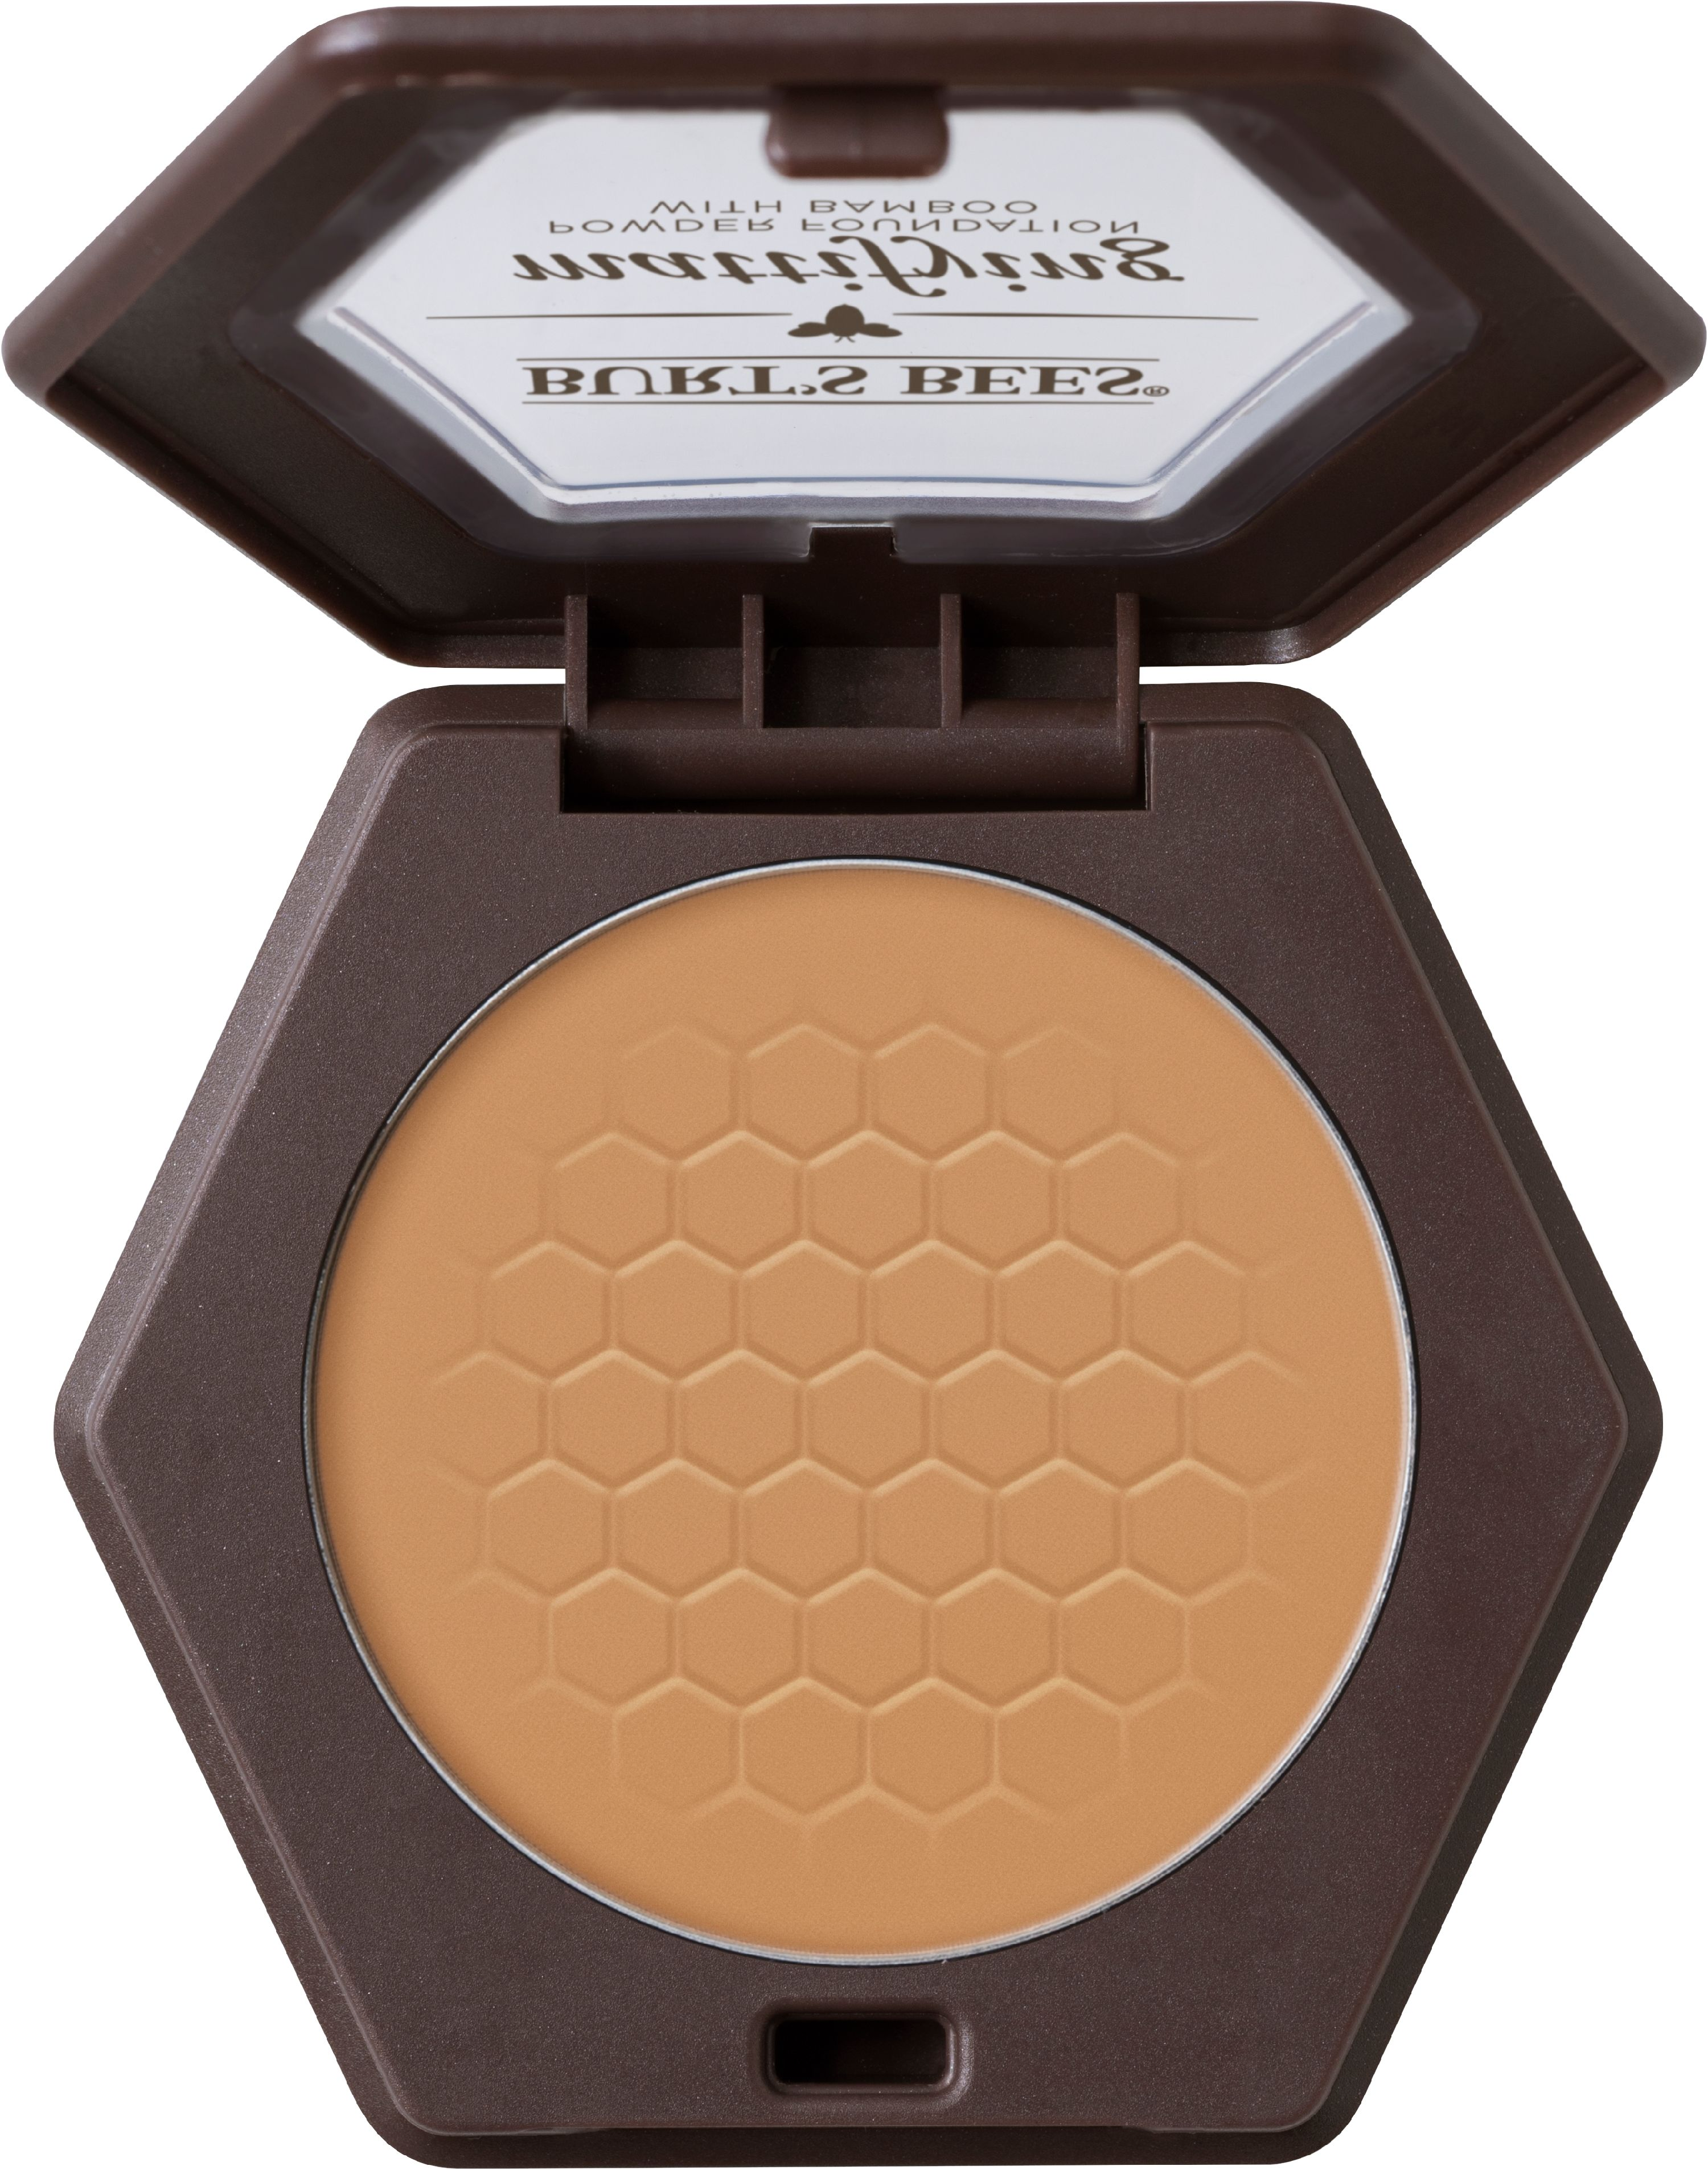 Burts Bees 100% Natural Mattifying Powder Foundation, Nutmeg - 0.3 Ounce